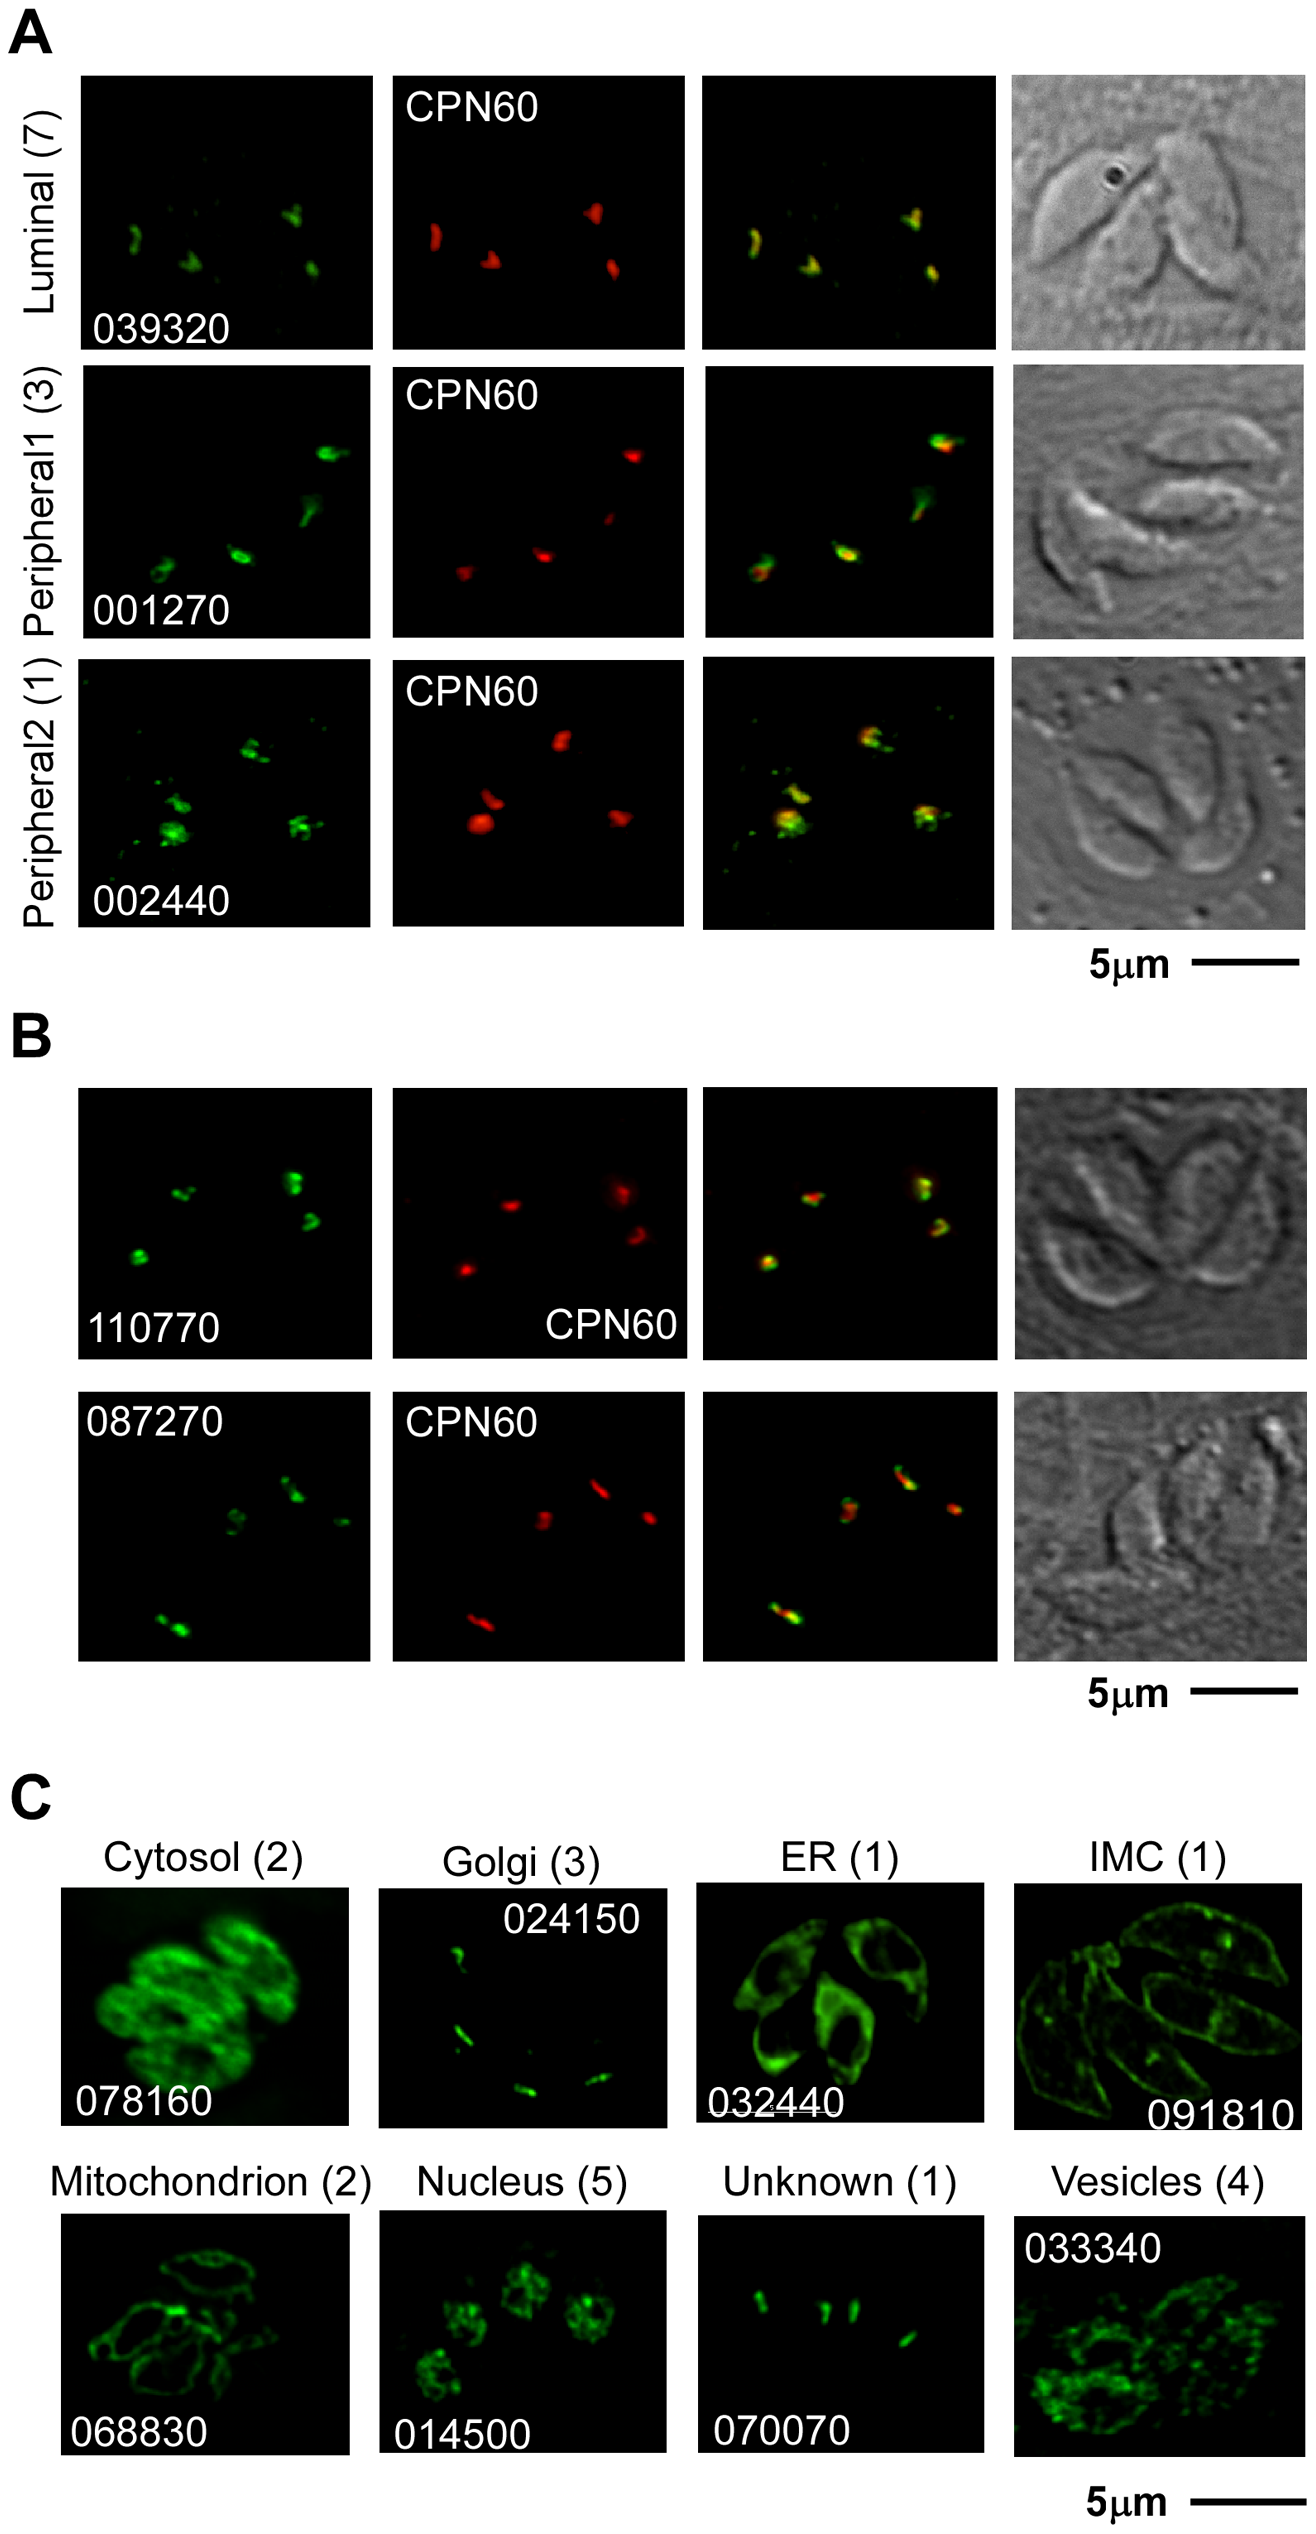 Localization of 30 previously uncharacterized proteins by endogenous epitope tagging.